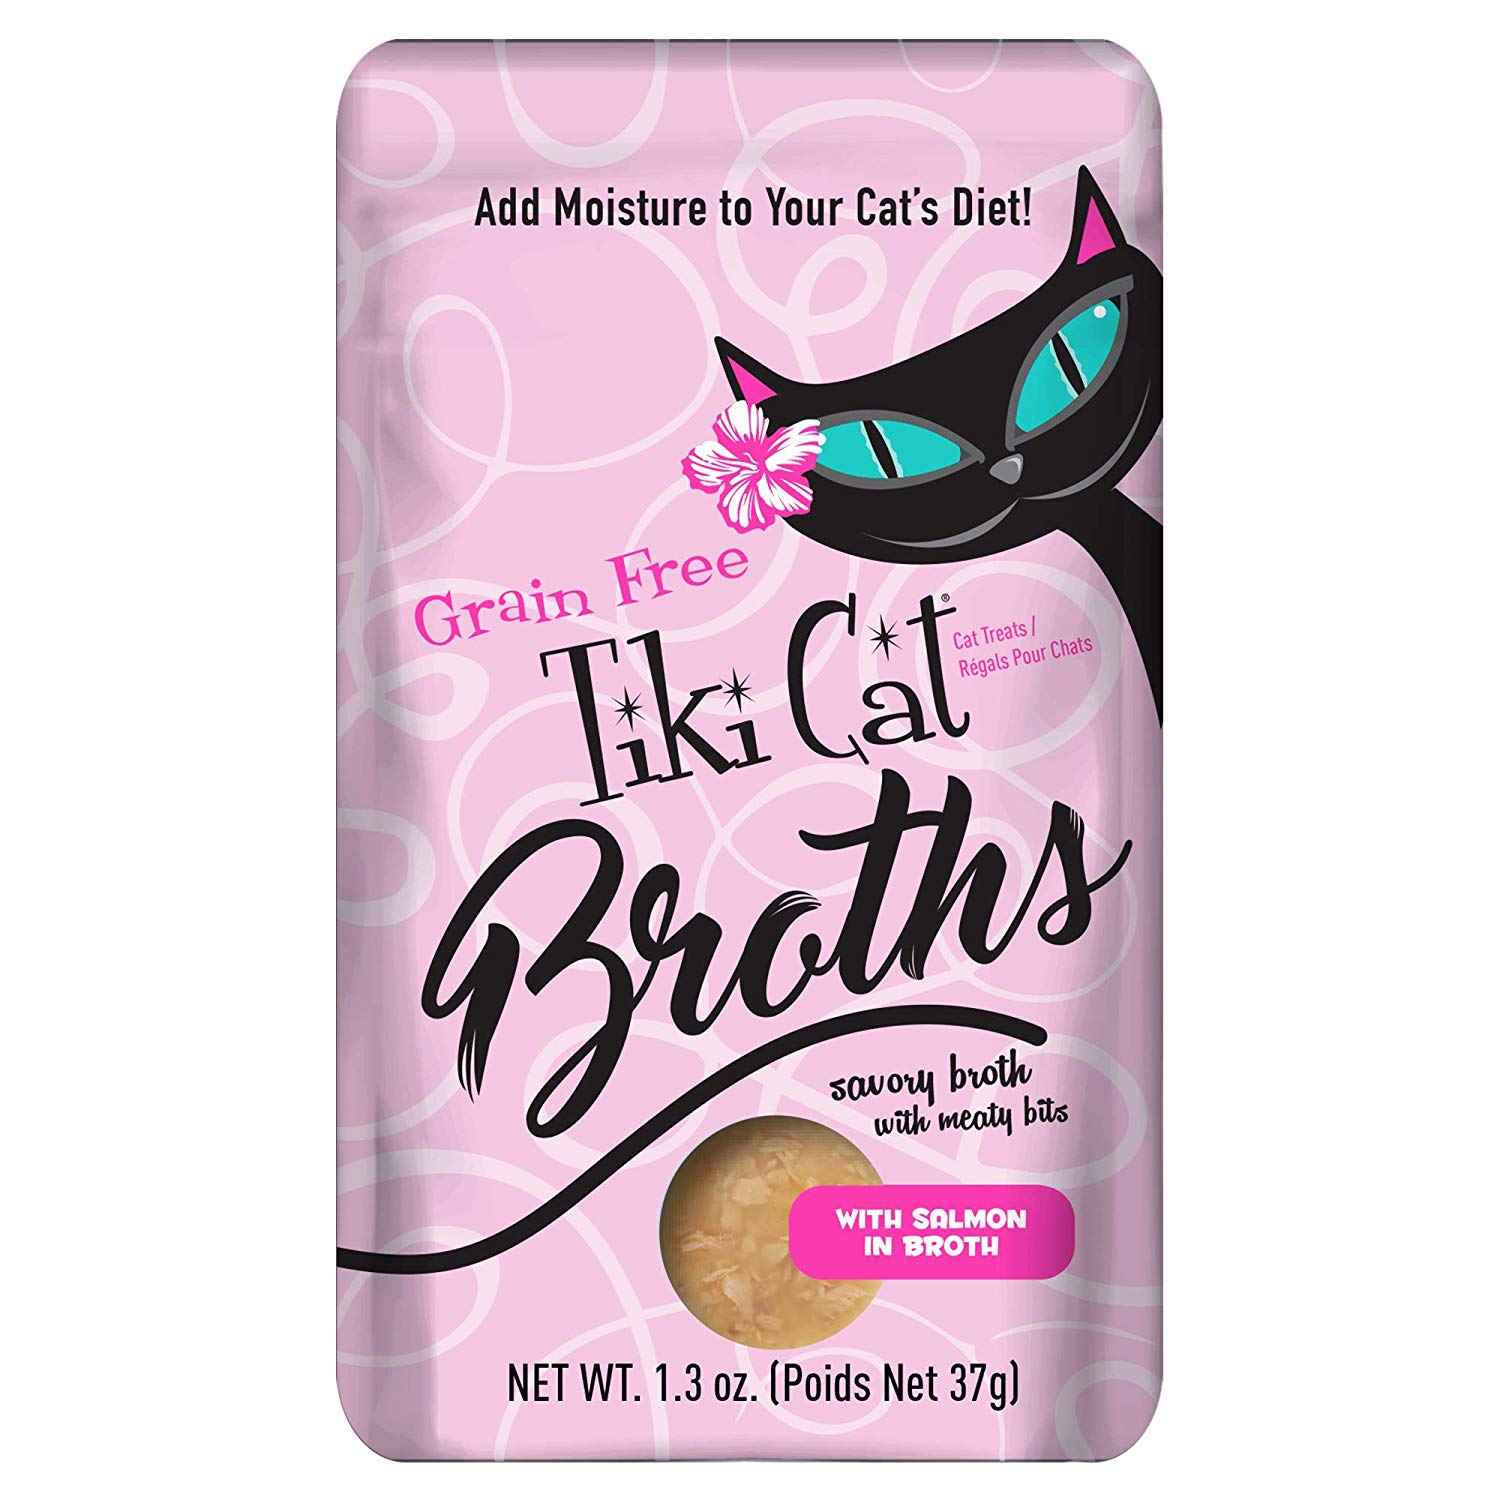 Tiki Cat Broths Salmon in Broth Wet Cat Food, 1.3-oz pouch